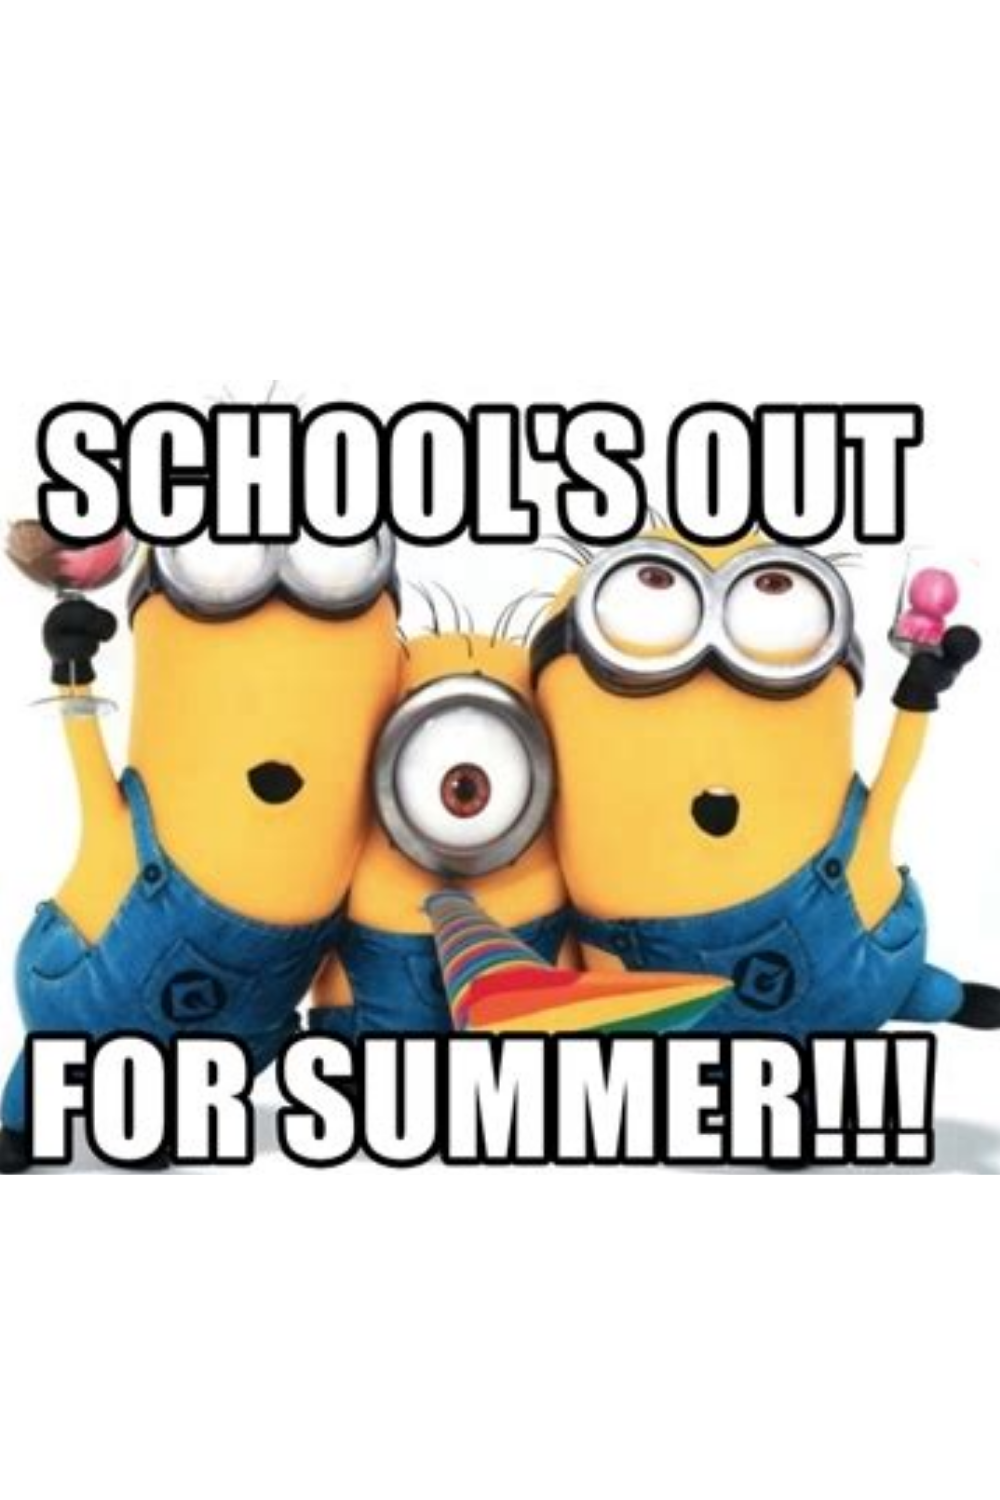 Schools Out for Summer Meme